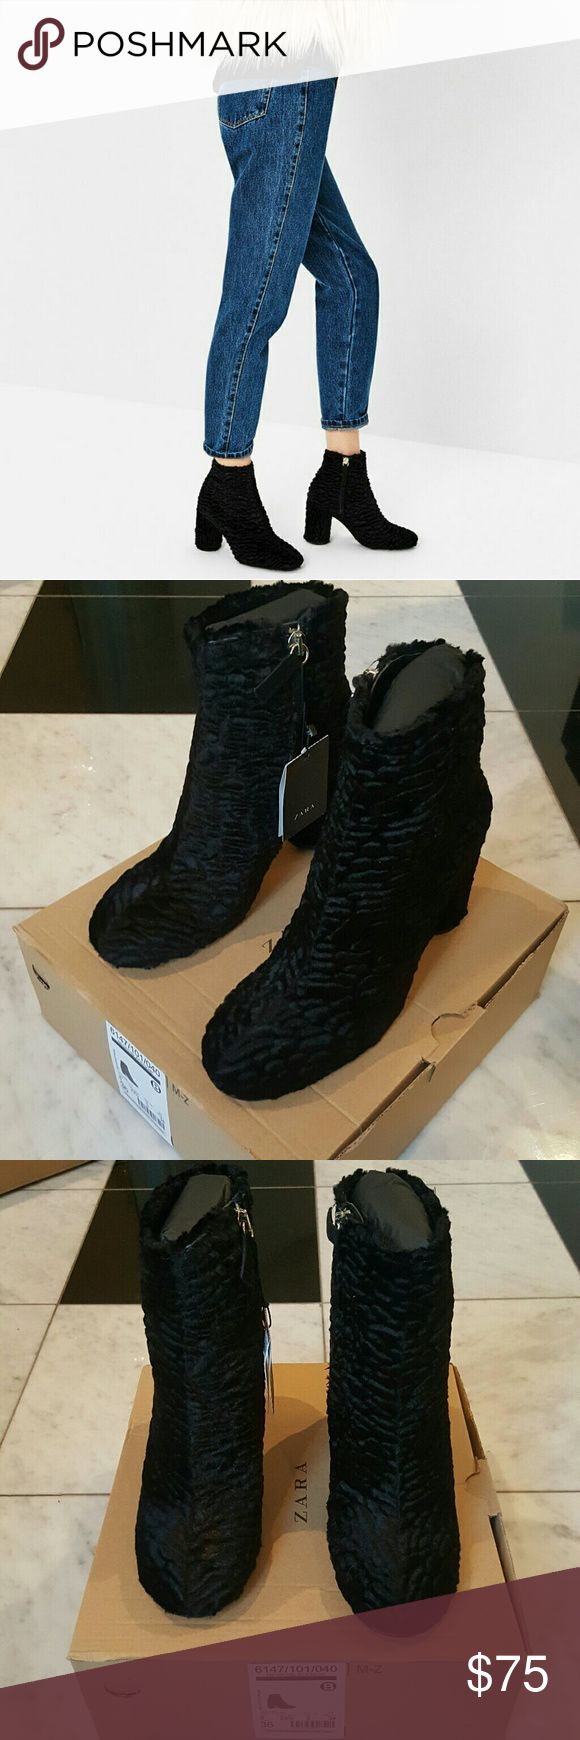 """Zara Faux Fur Ankle Boots FAUX FUR ANKLE BOOTS (6147) Brand new with tags in original wrap and box. 3.2"""" heel with side zip closure.  Material is 71% acetate, 14% polyester, 8% polyamide, 7% cotton.  100% goat leather slipsoles.   Available in: EU 36/US 6 EU 38/US 7.5 Zara Shoes Ankle Boots & Booties"""